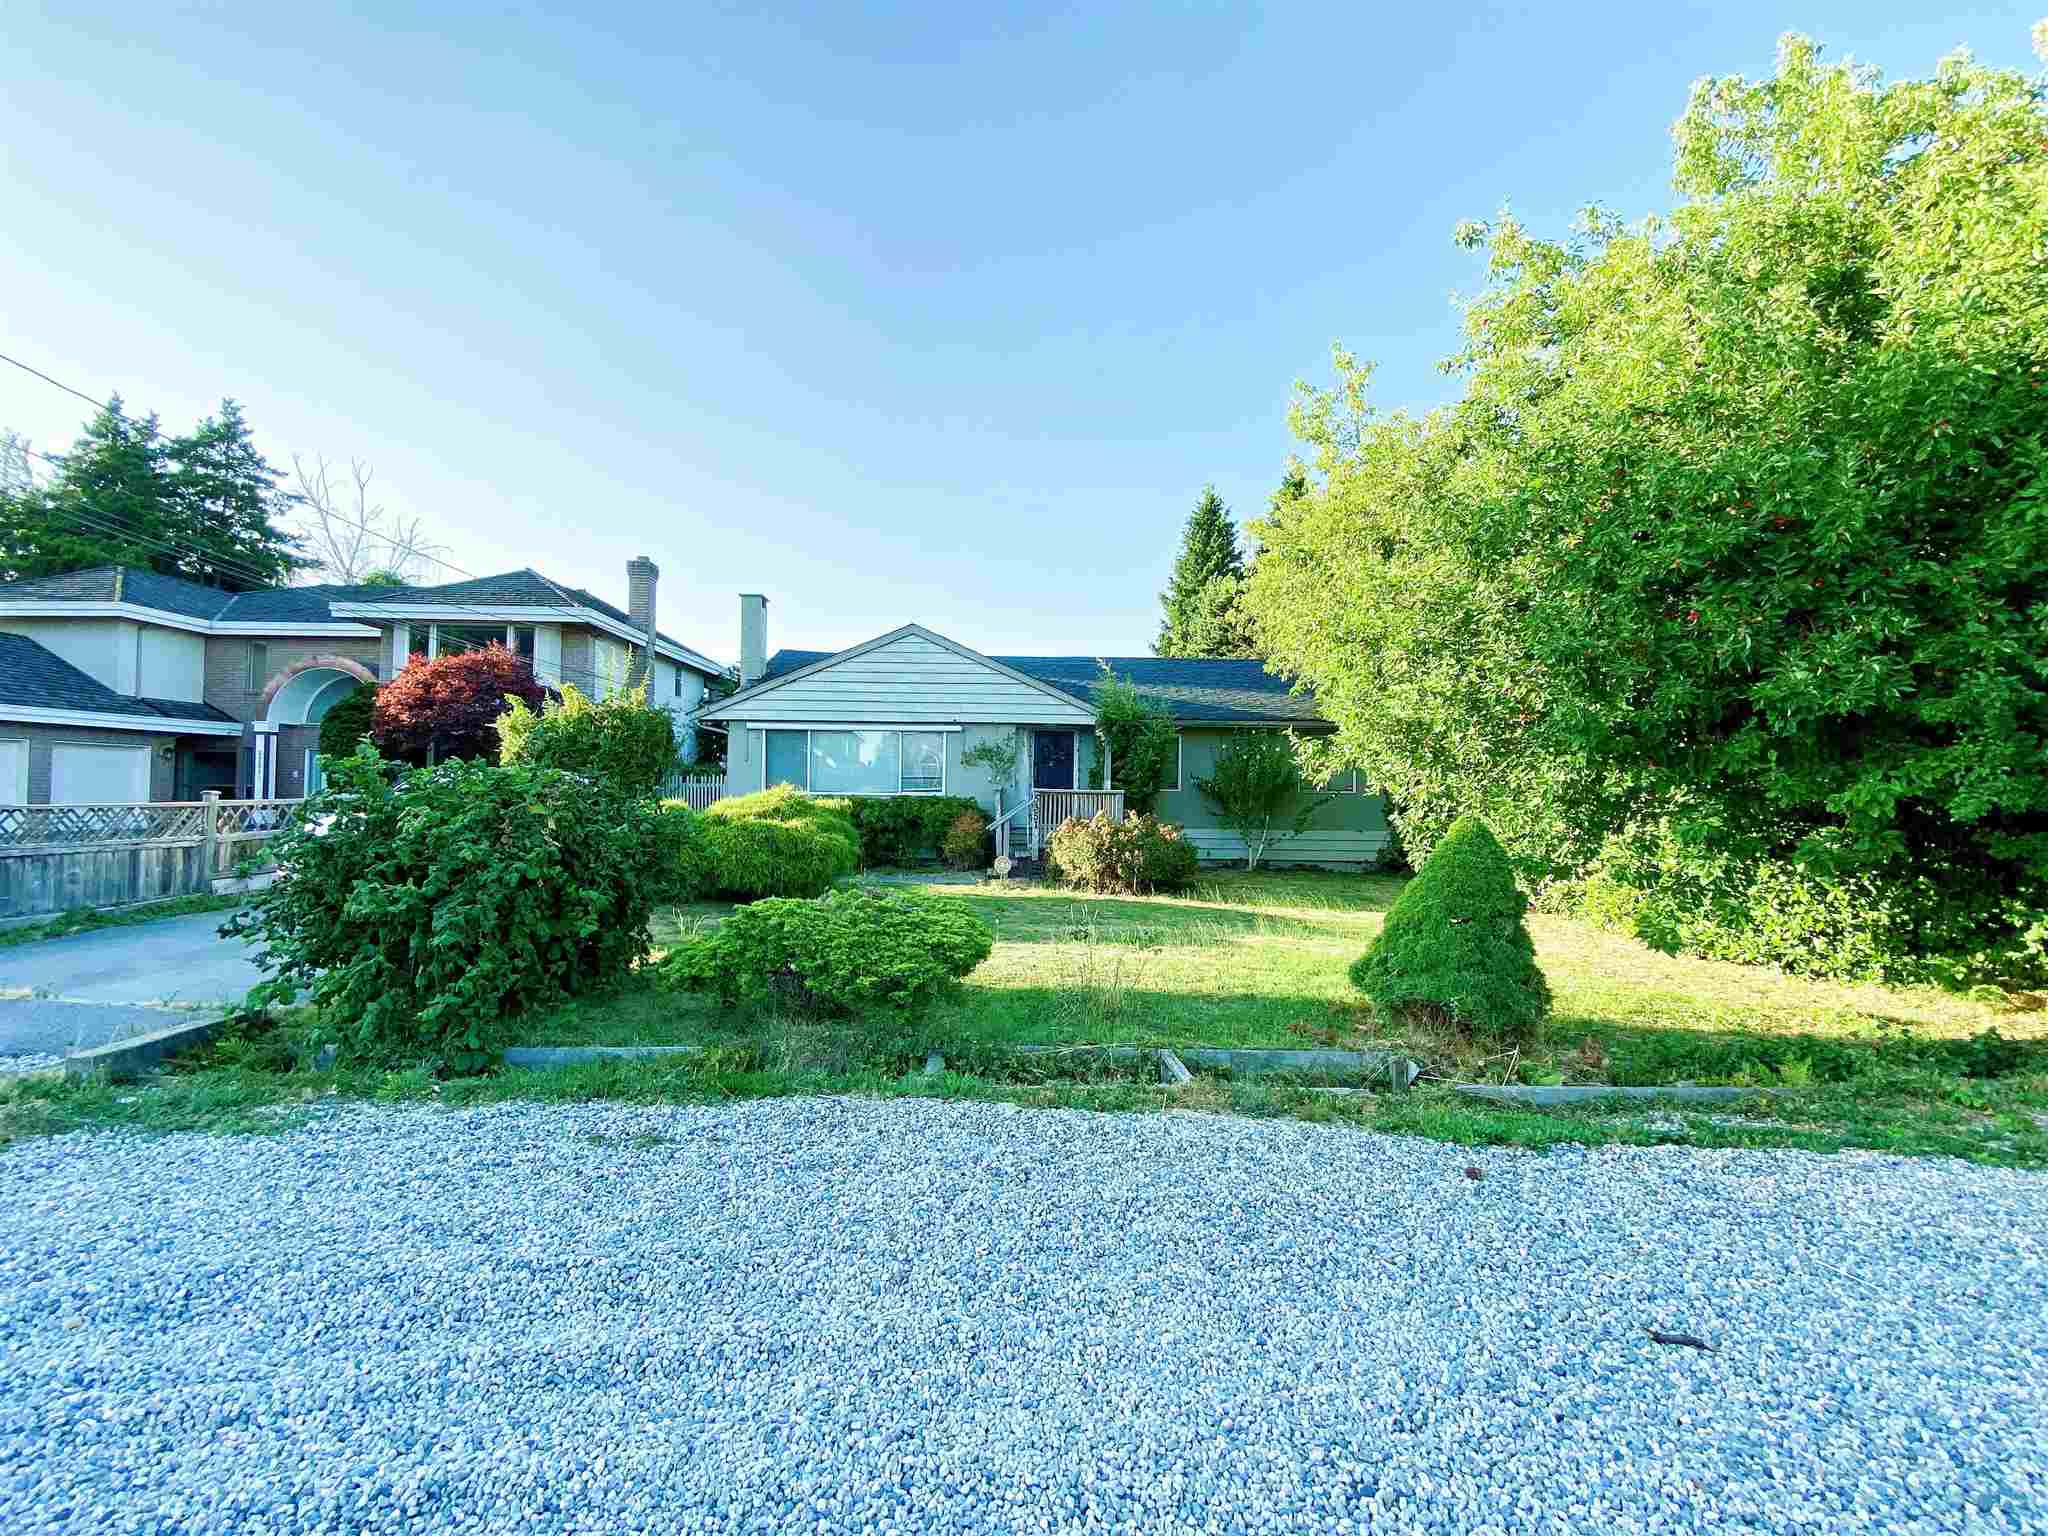 """?Great Opportunity"""" to own a large size lot and build your own house. The value is mainly on the land, Very quiet streets and neighbors, facing to the south. Walking distance to Blundell Center less than 10 minutes."""